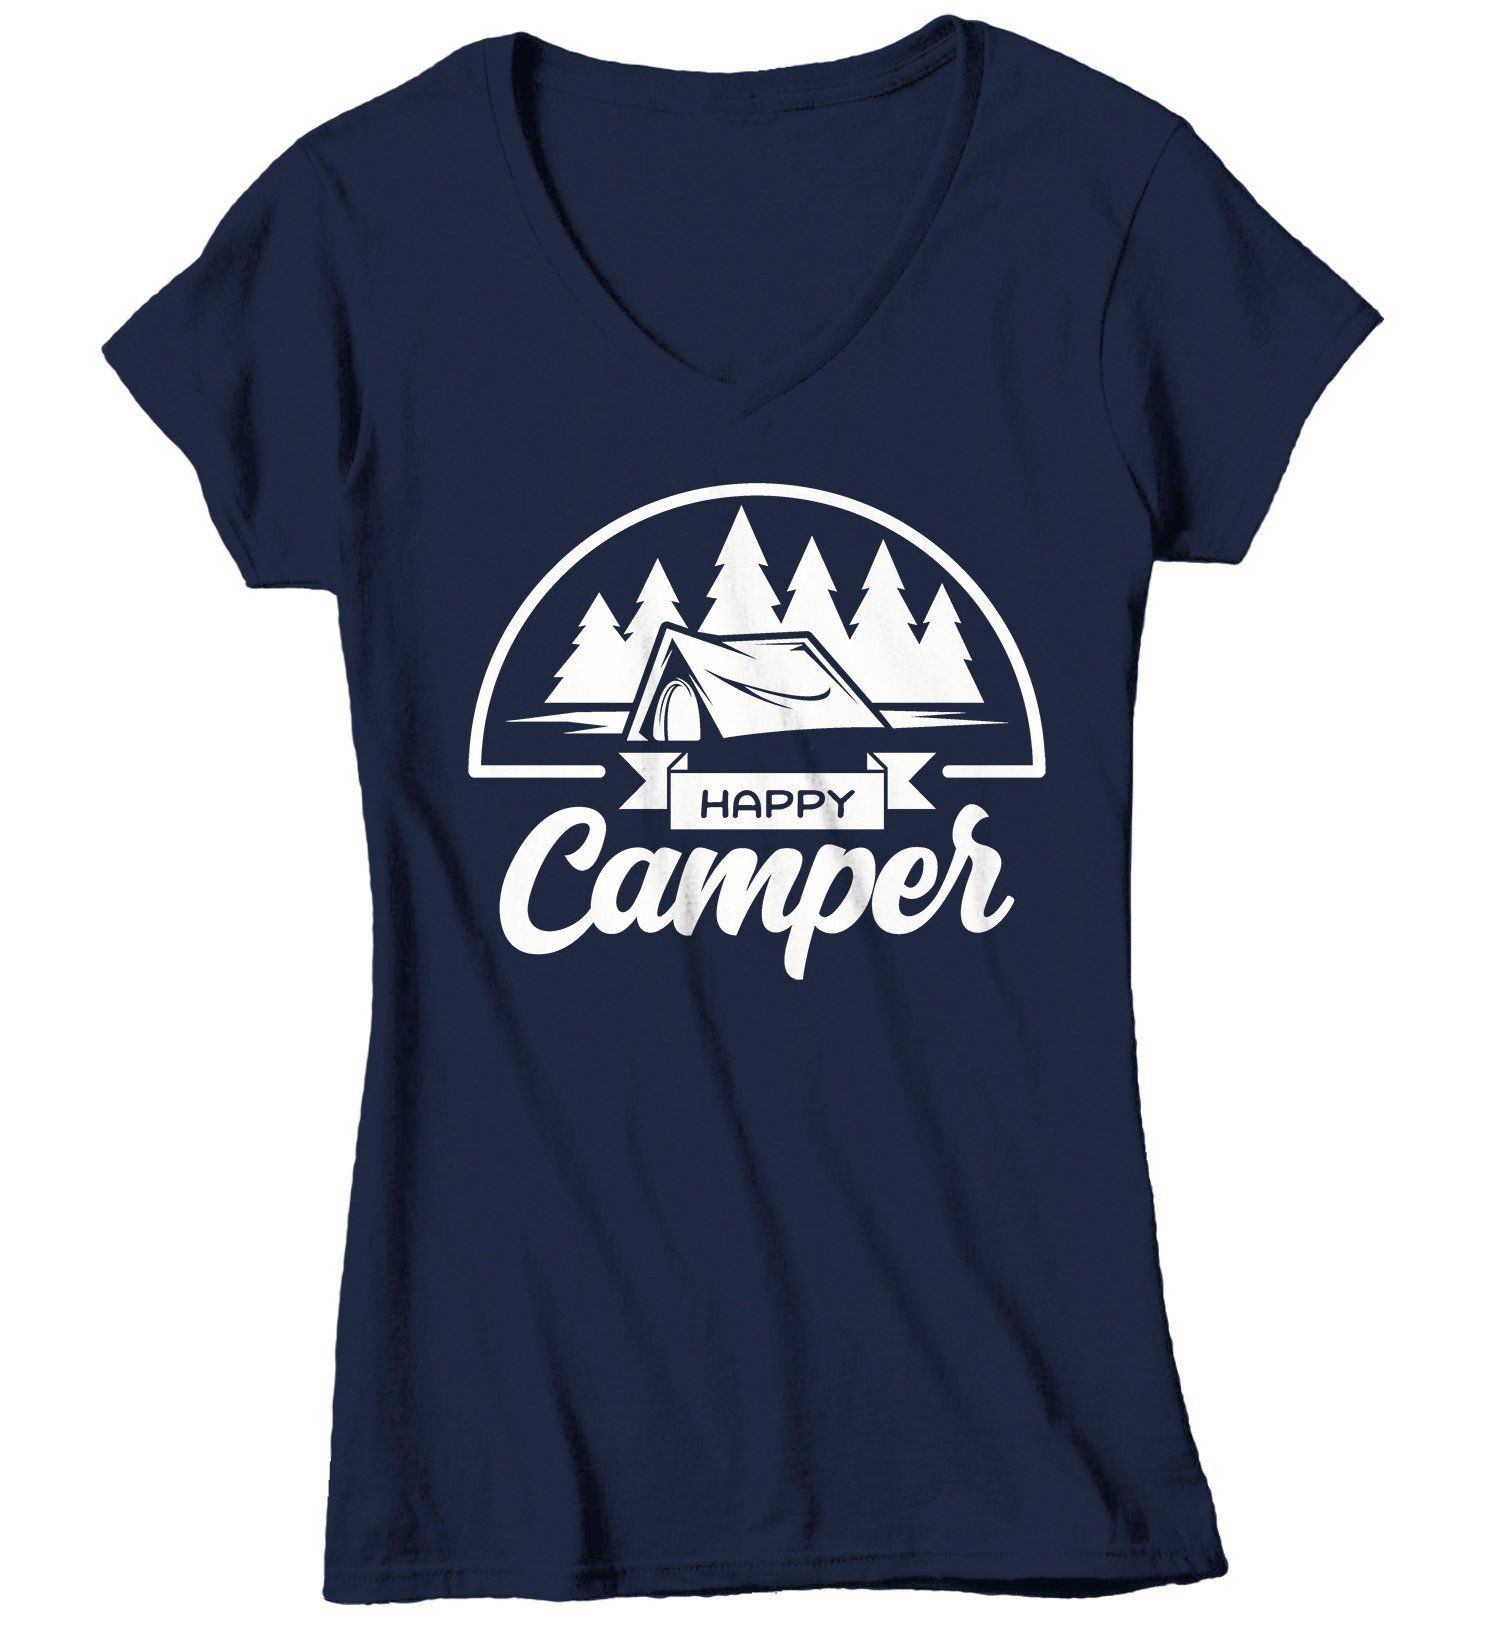 Women's Happy Camper T Shirt Tent Shirts Camping Tee Nature Tshirt Wanderlust Clothing – Products